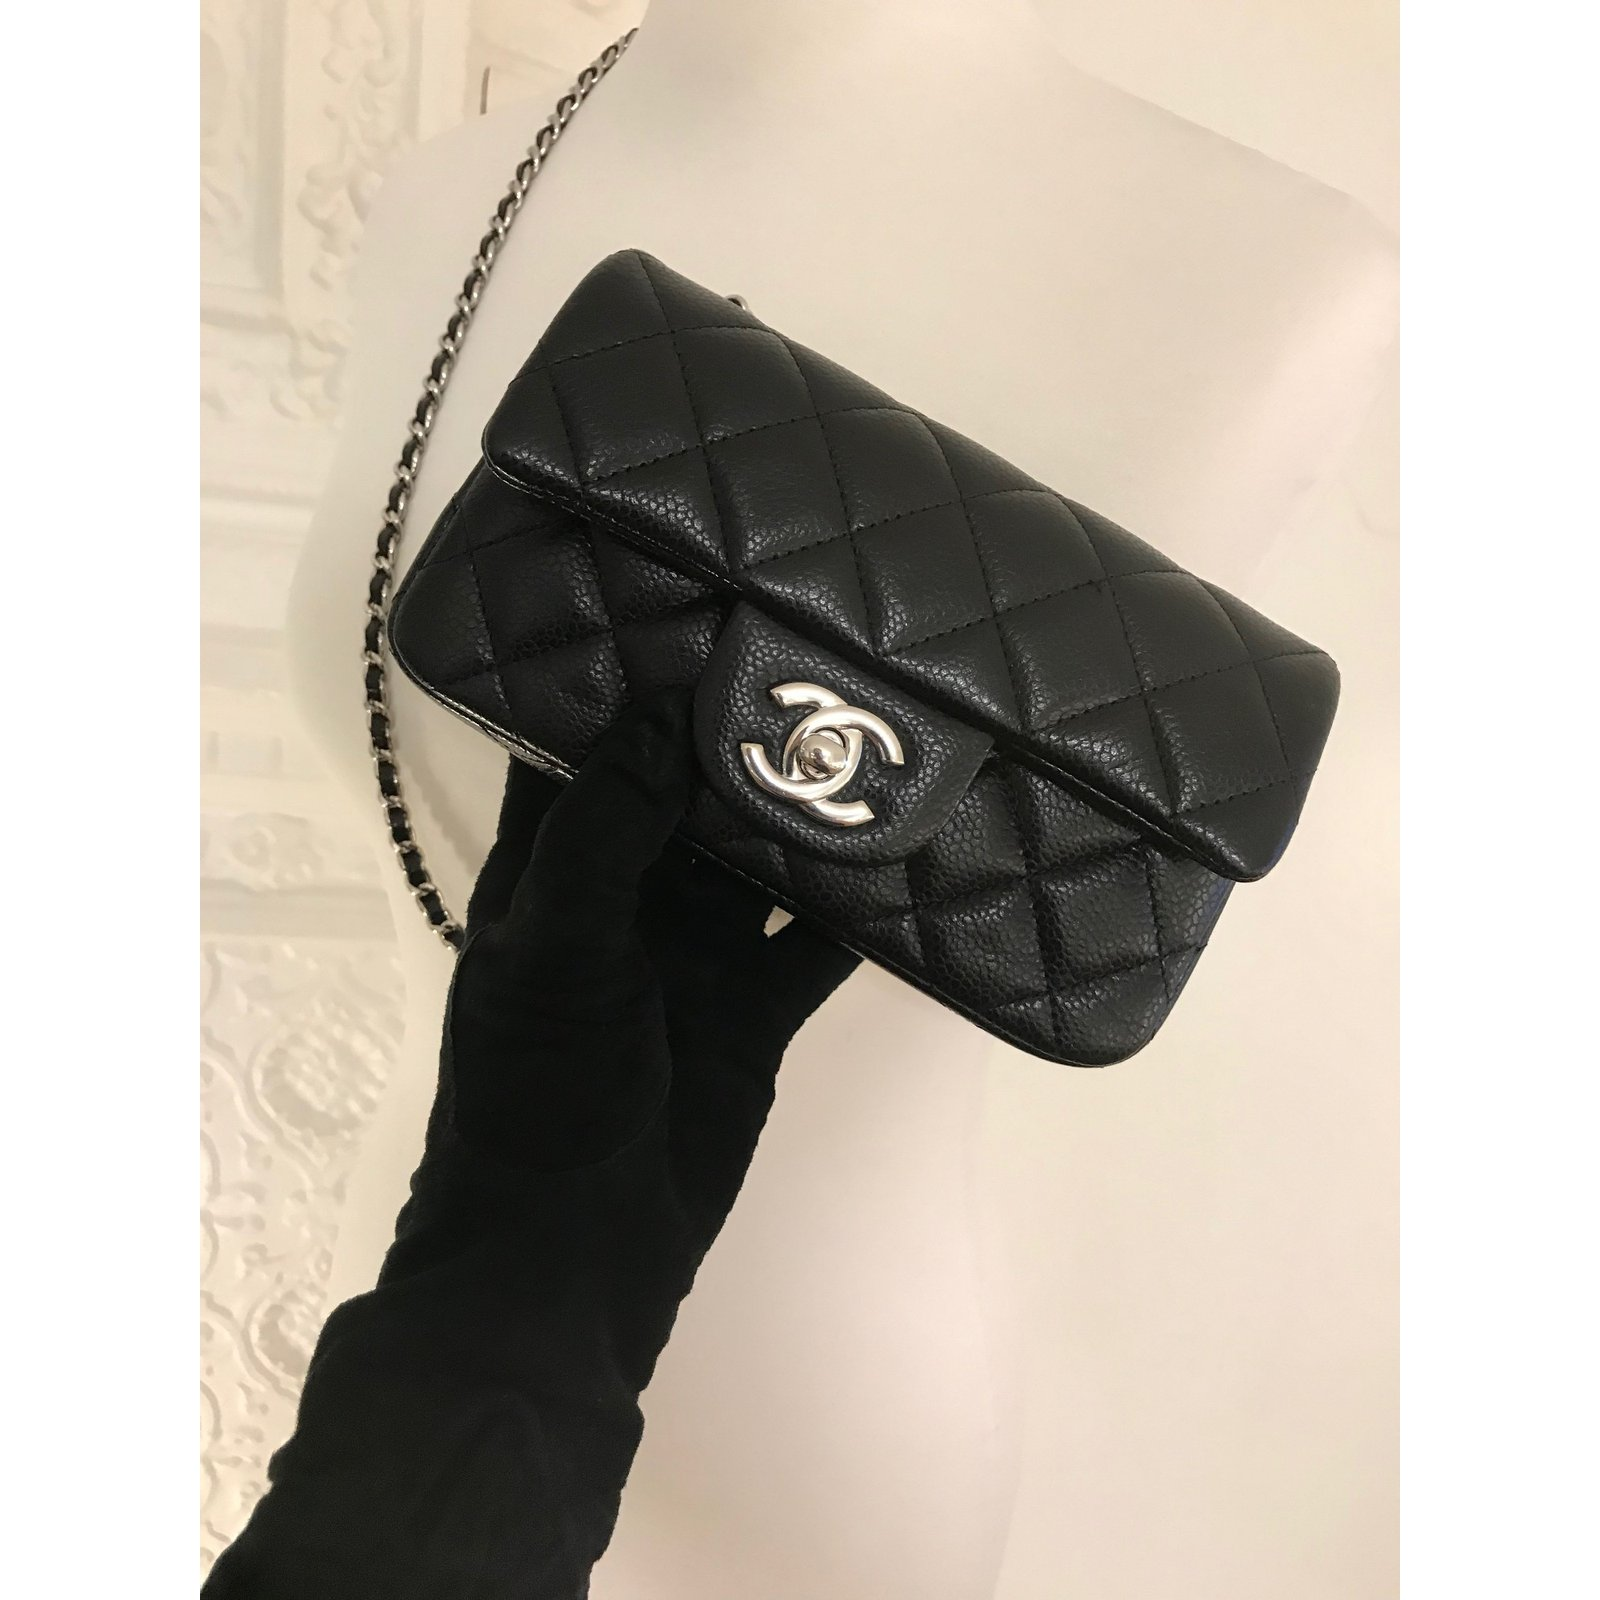 9f7b23d8 extra mini classic flap bag in black caviar leather with silver hw